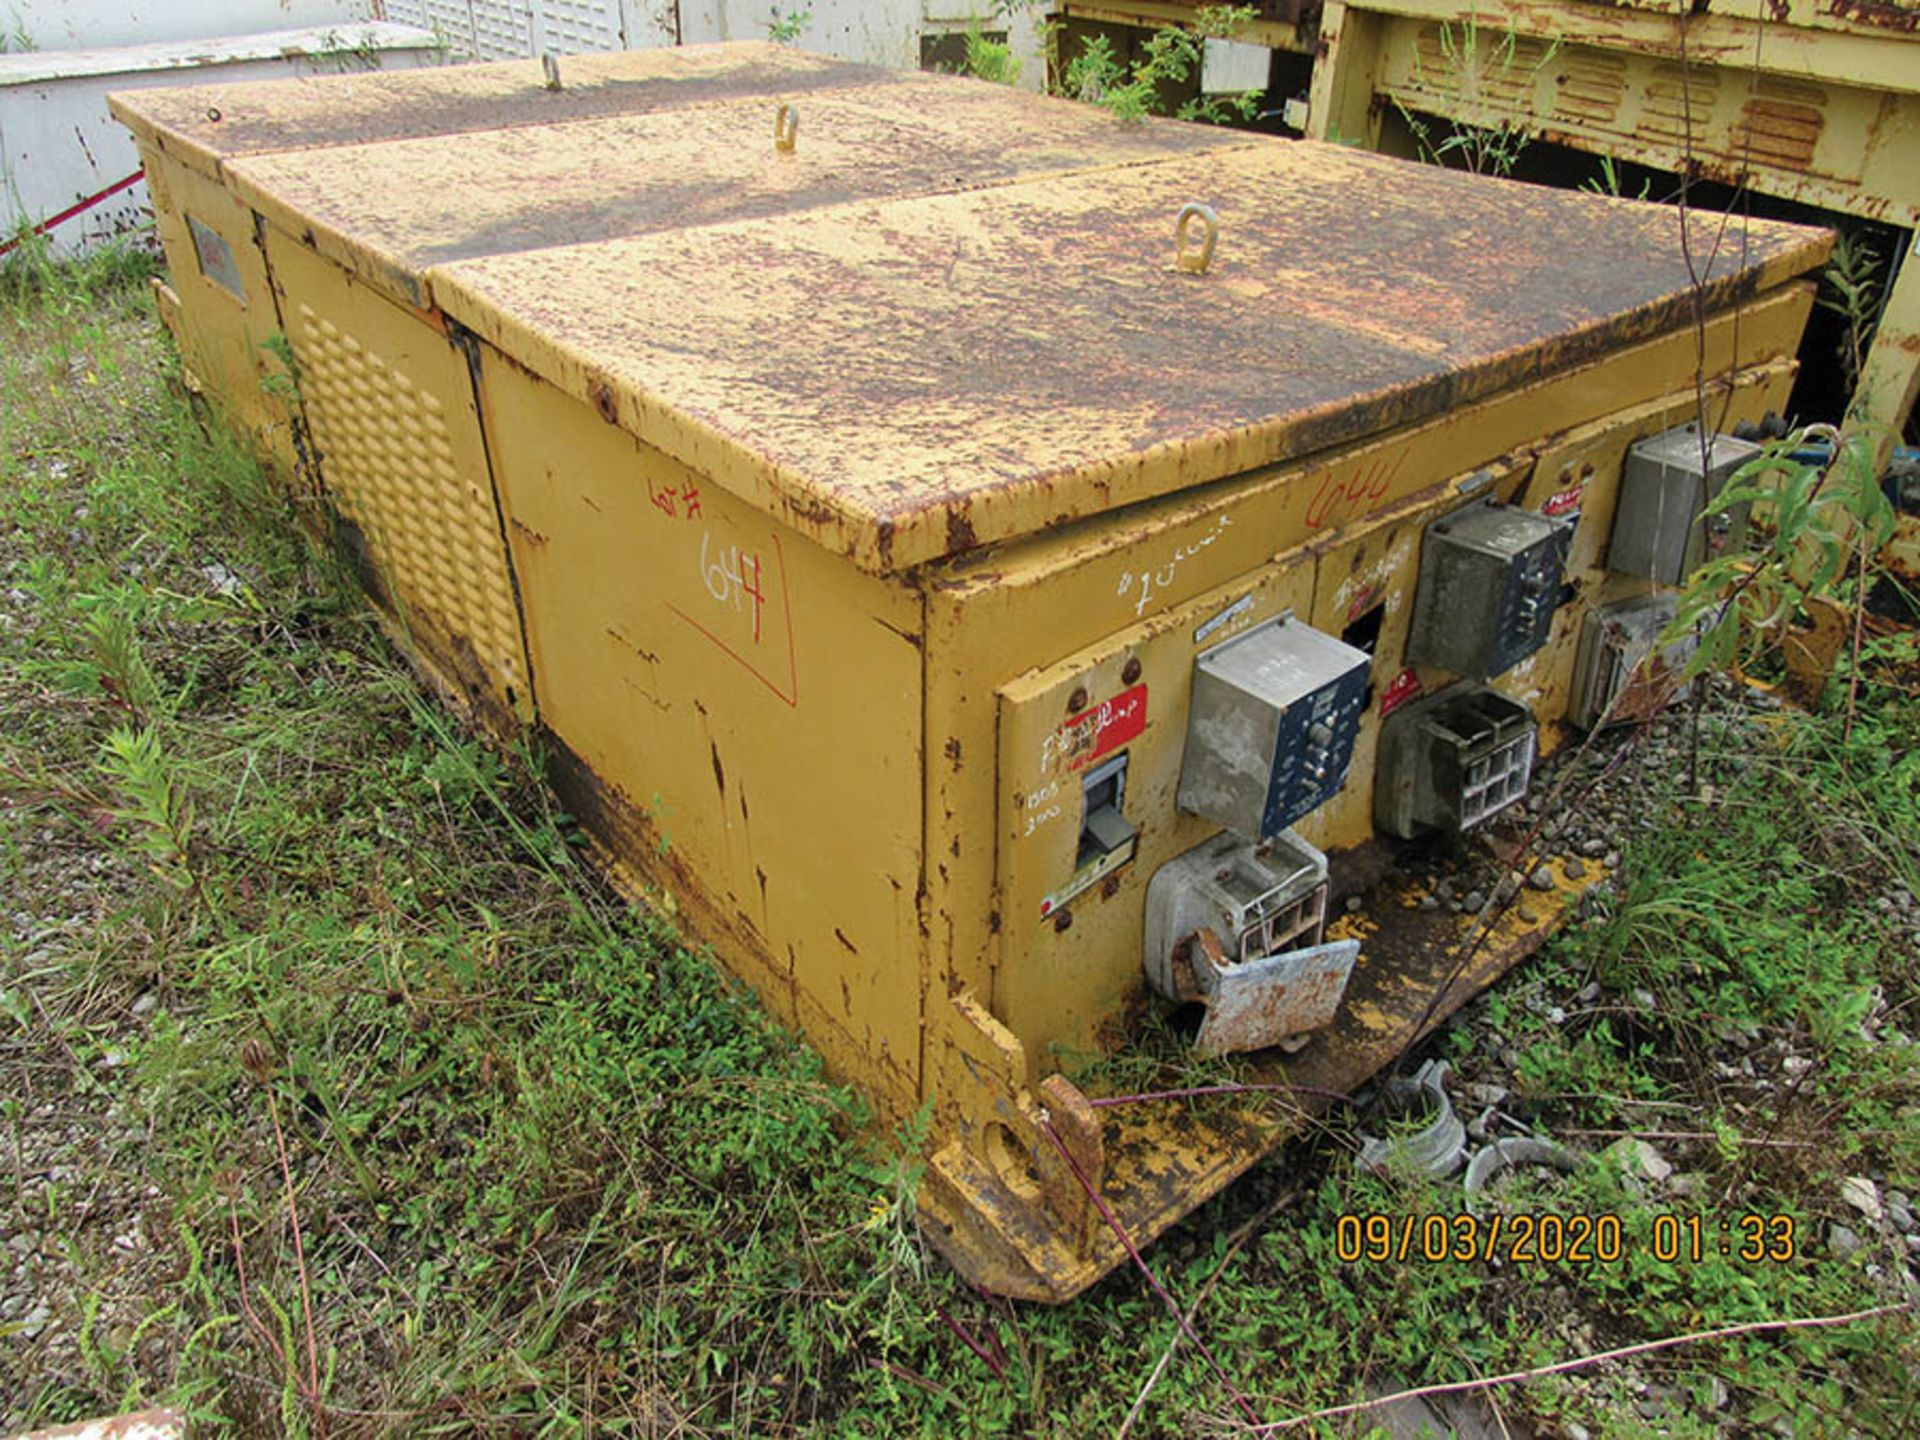 Lot 644 - POWER CENTER, INFORMATION N/A